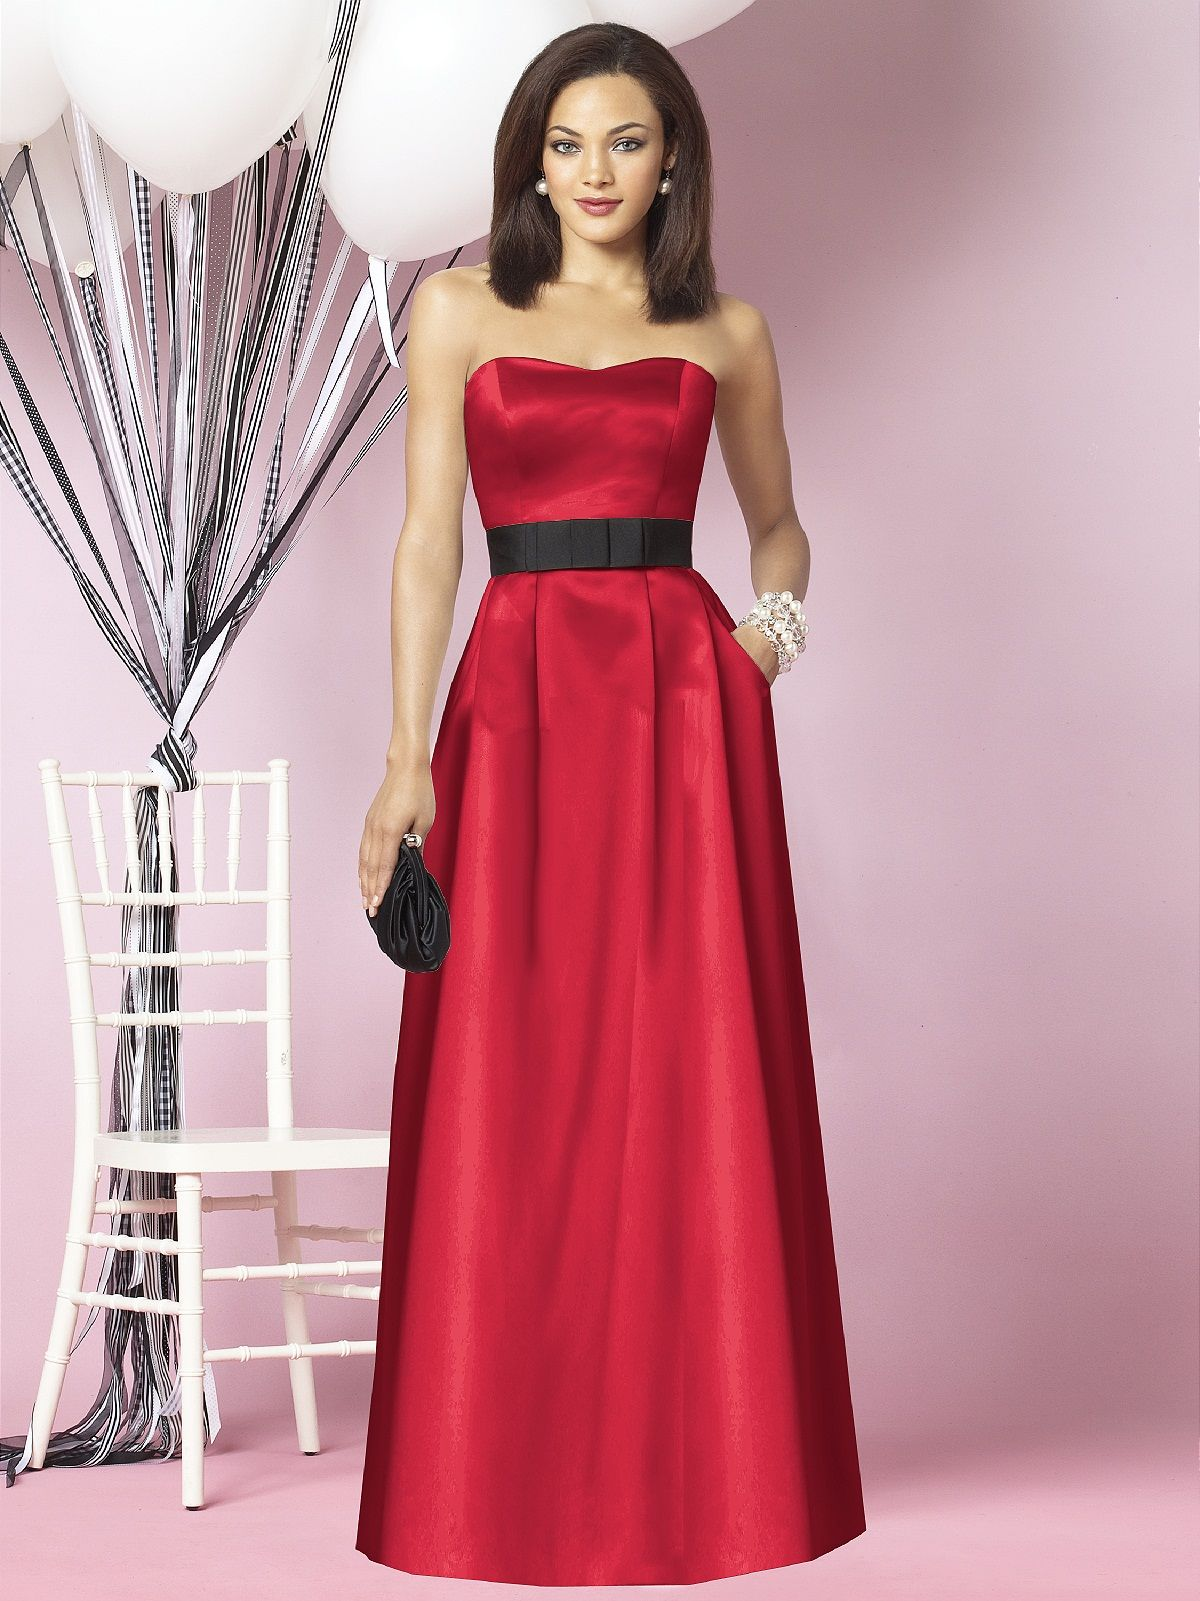 red dress | ... in Red and Black Bridesmaid Dresses: Unique and Elegant Combination